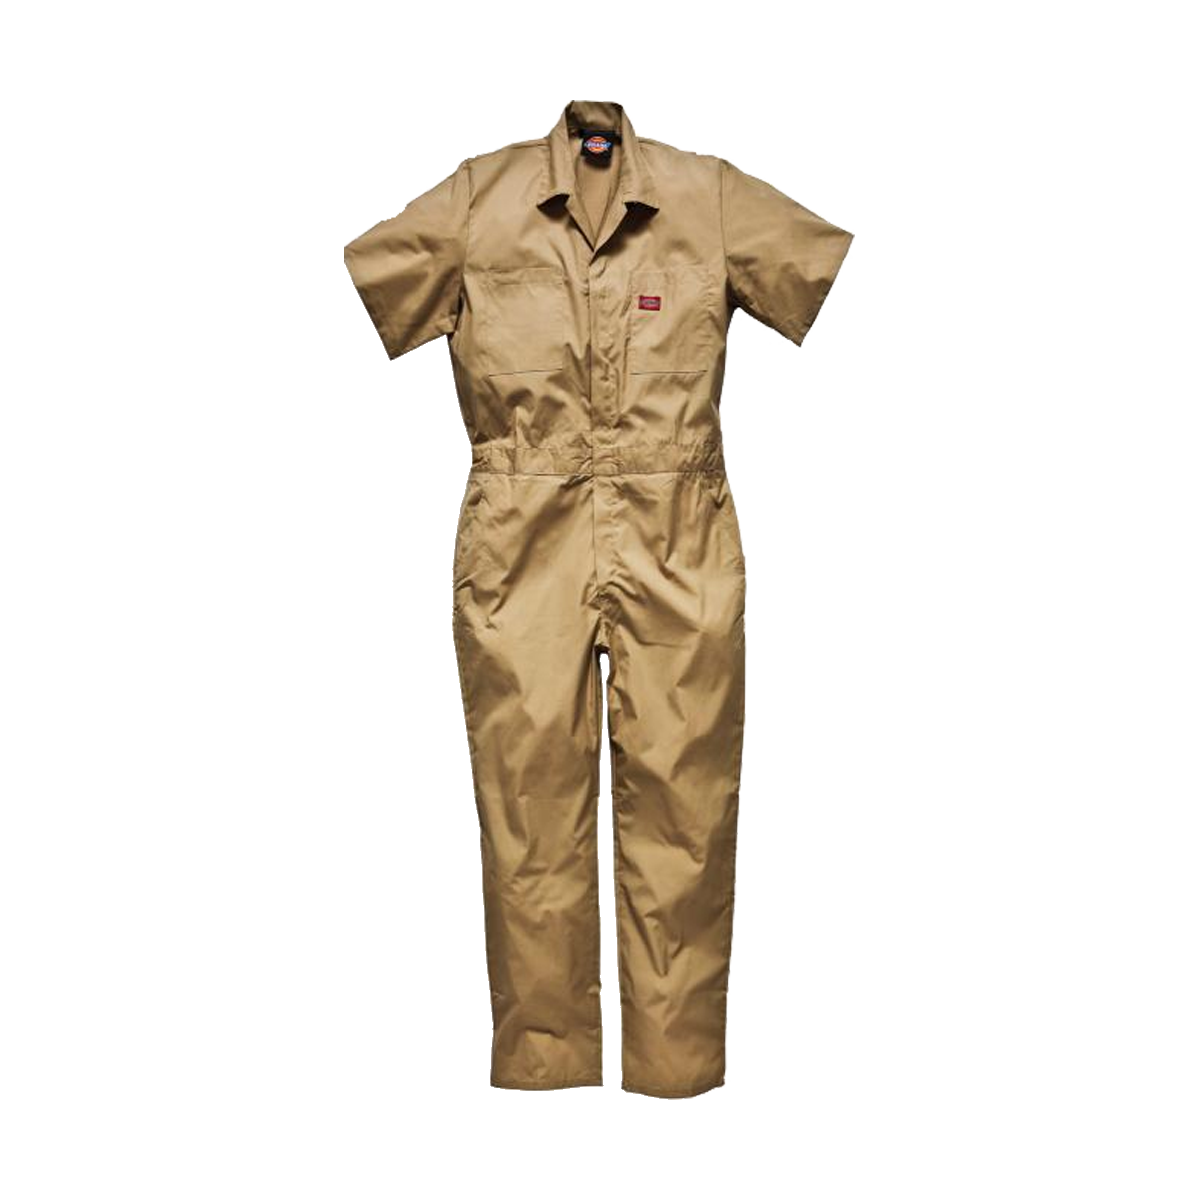 Yacht Uniform - Mechanic - Dickies Overall wd 2299